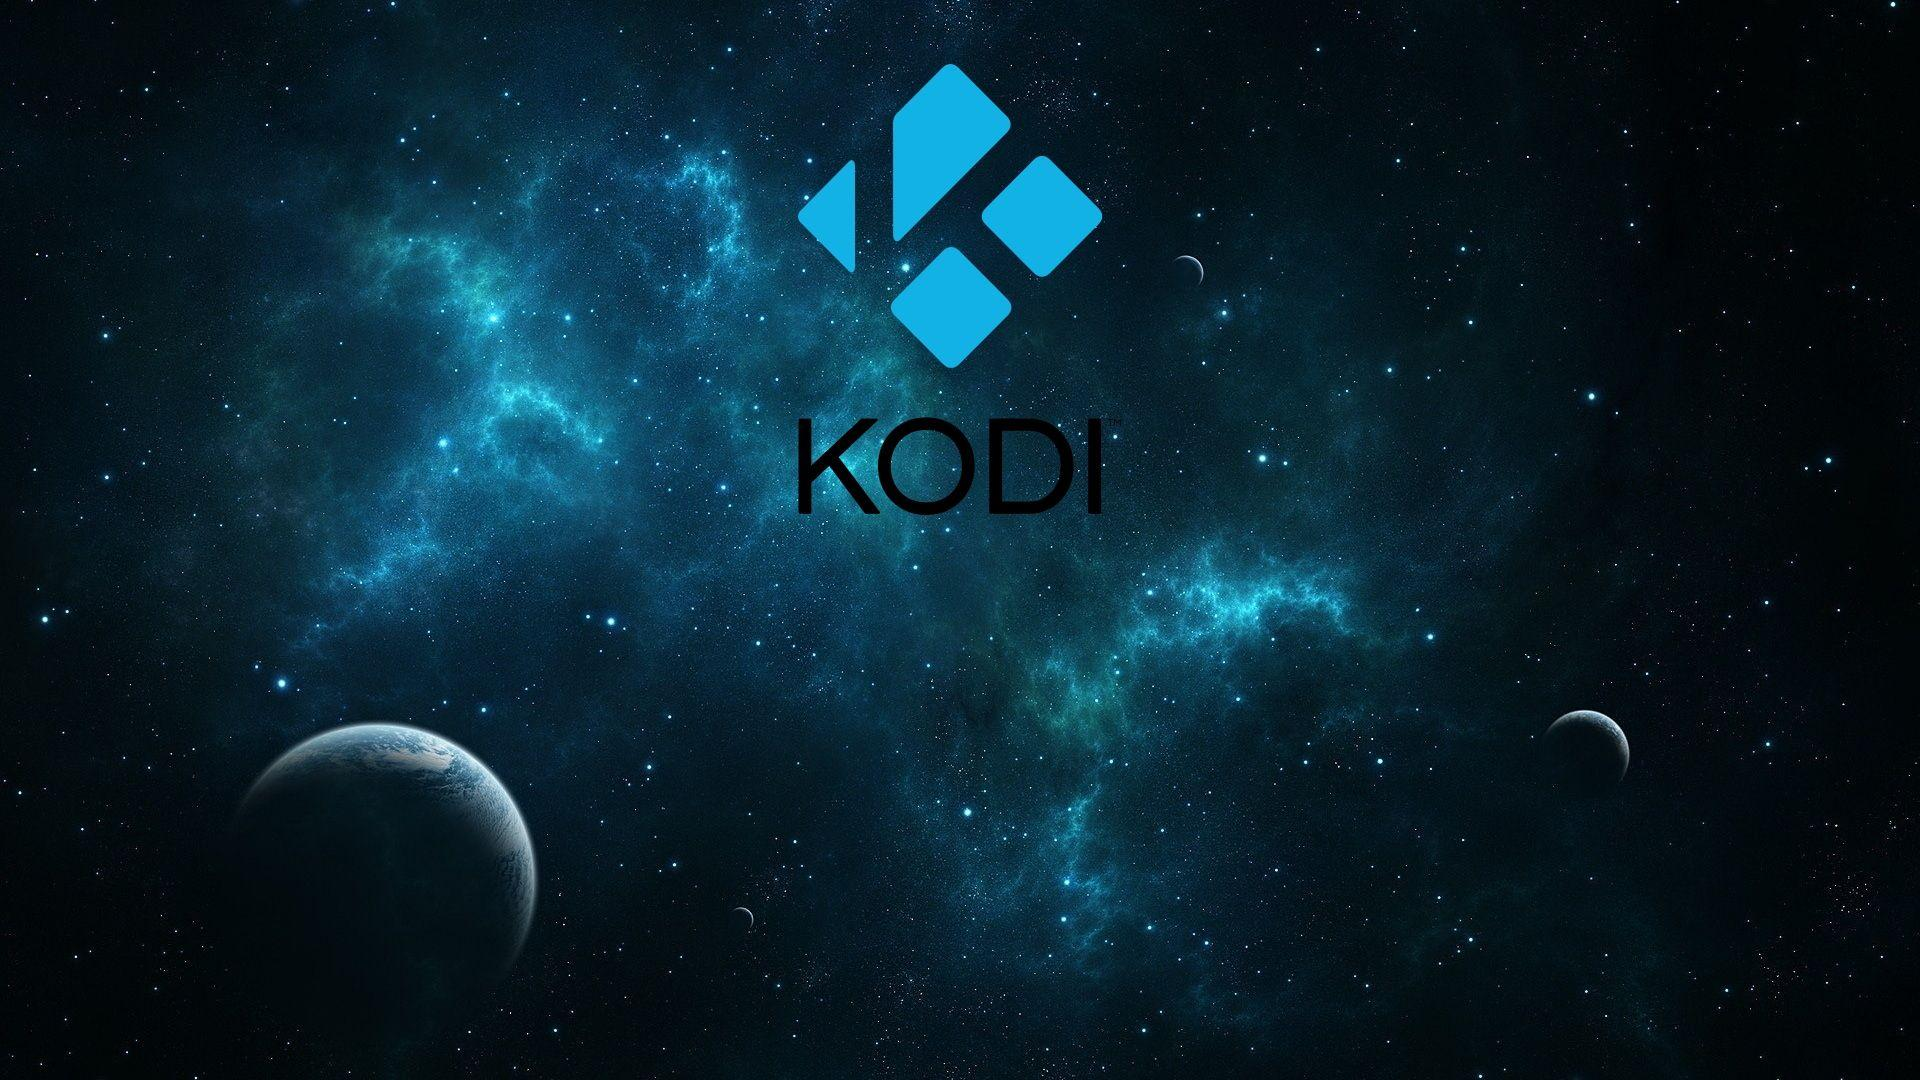 55 Kodi Wallpapers   Download at WallpaperBro 1920x1080